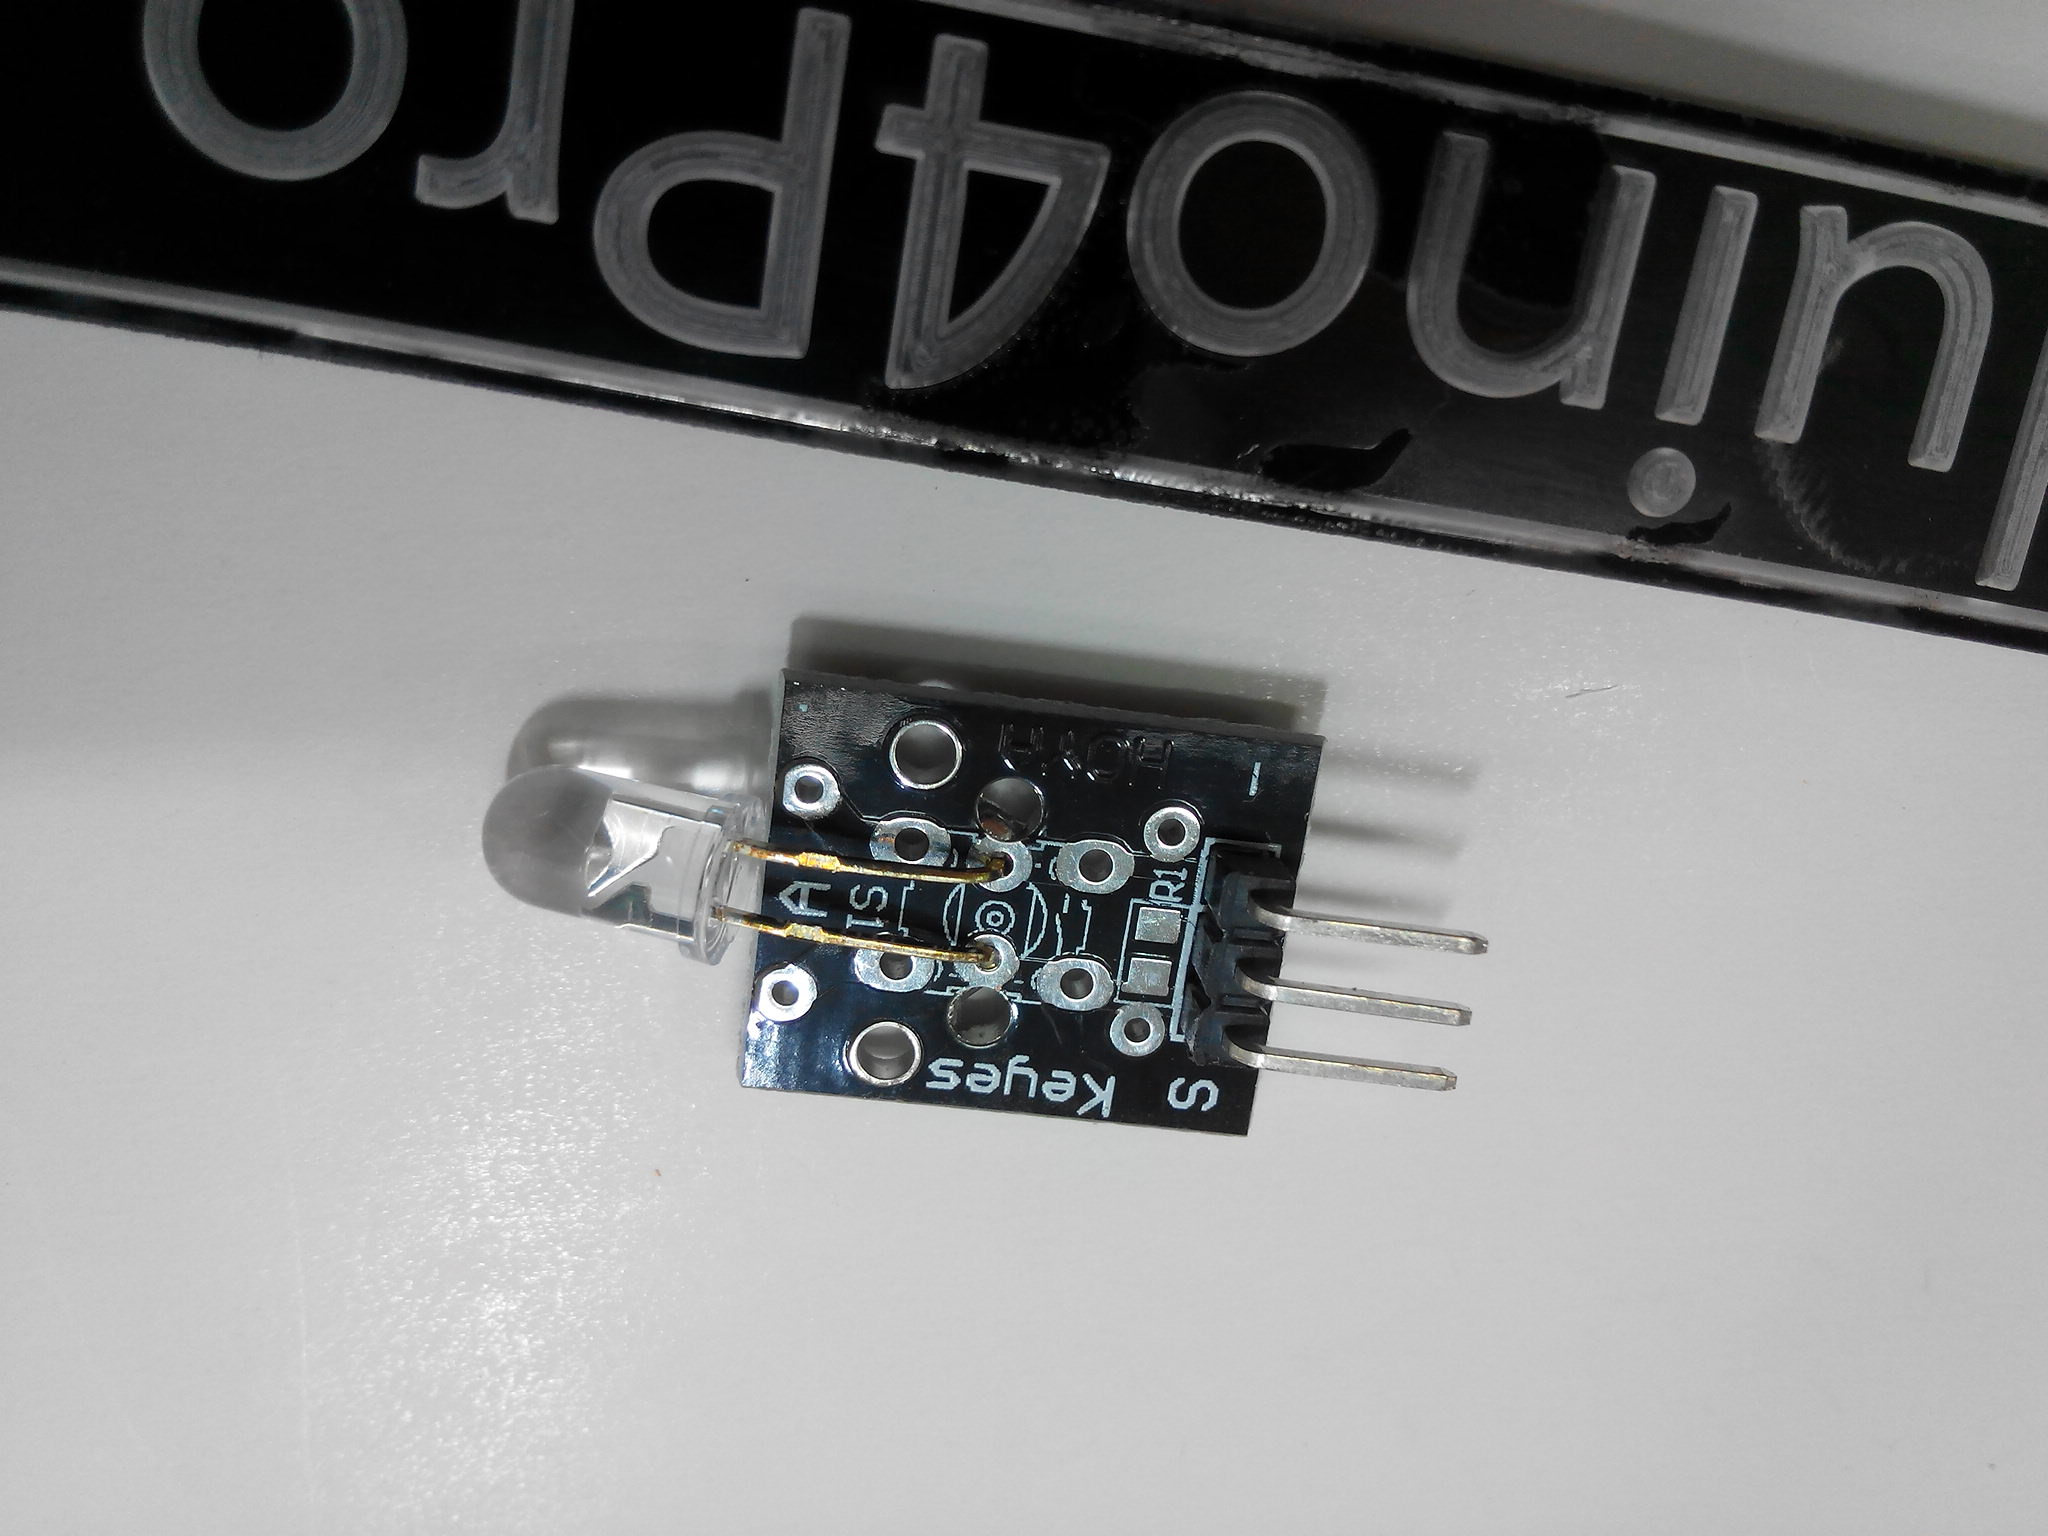 Infrared transmitter module for arduino